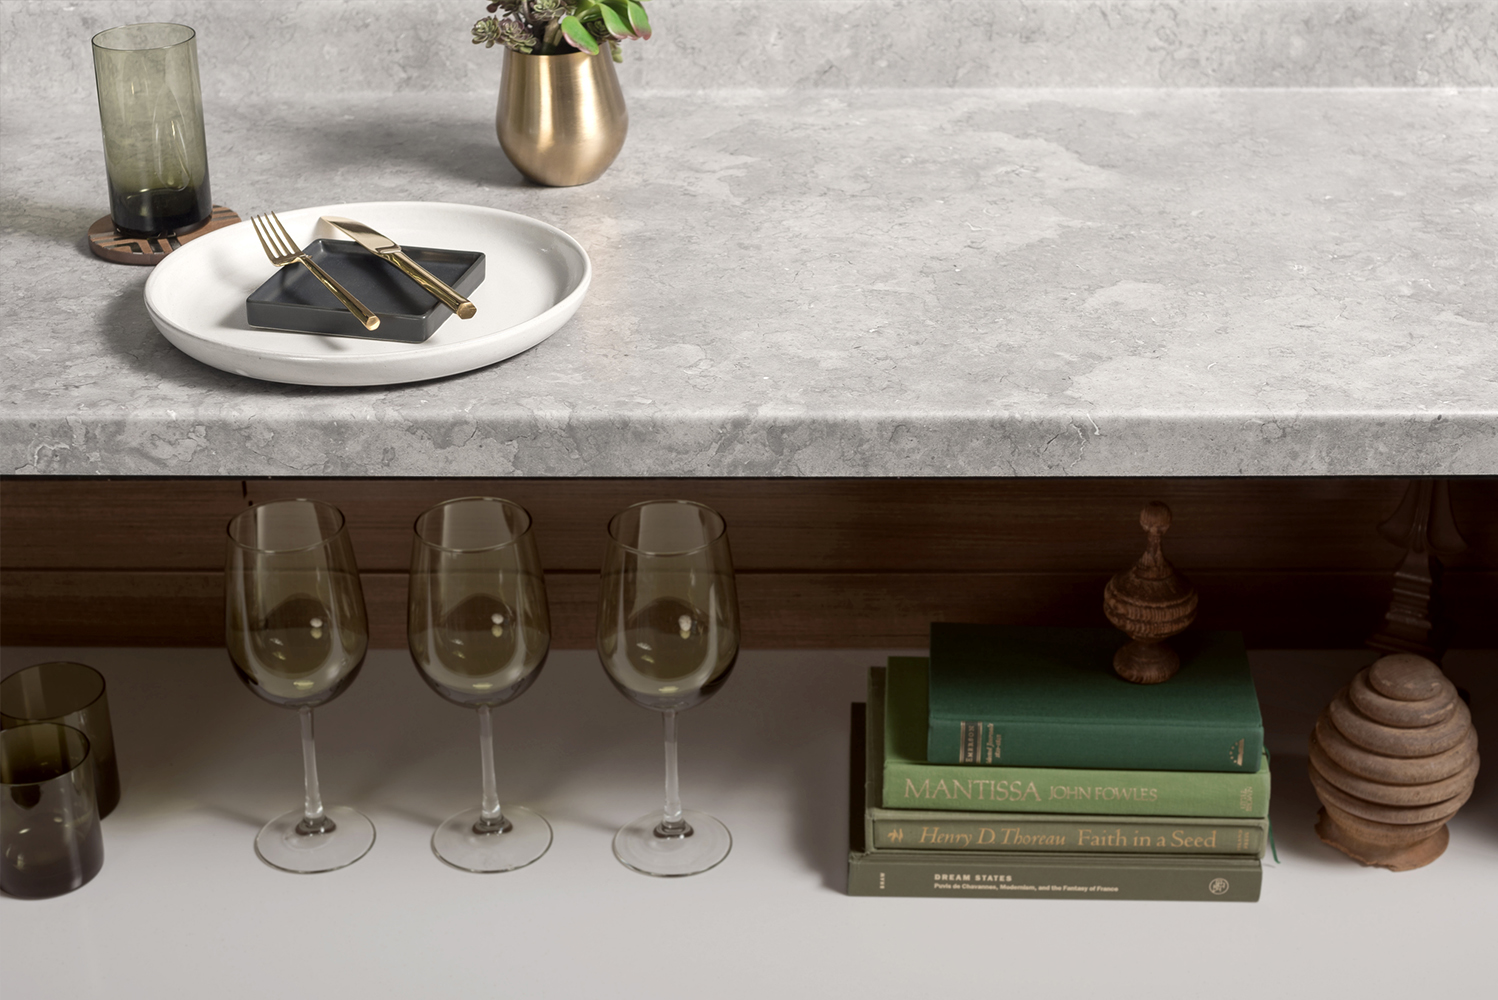 The new collection transforms the laminate with the company's Soft Silk finish.